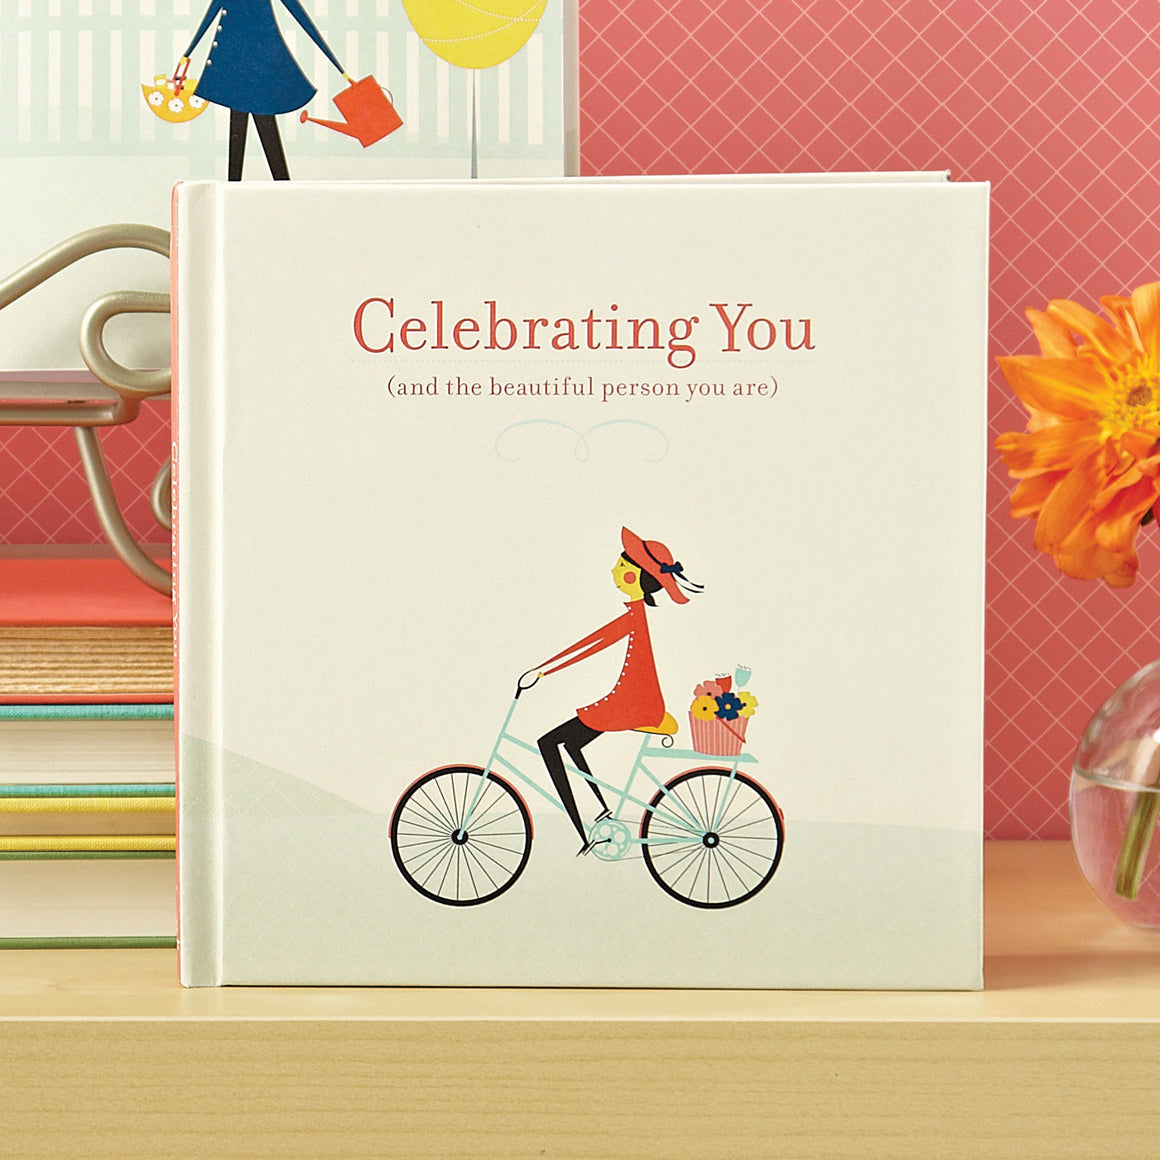 'Celebrating You' Gift Book - The Love Trees